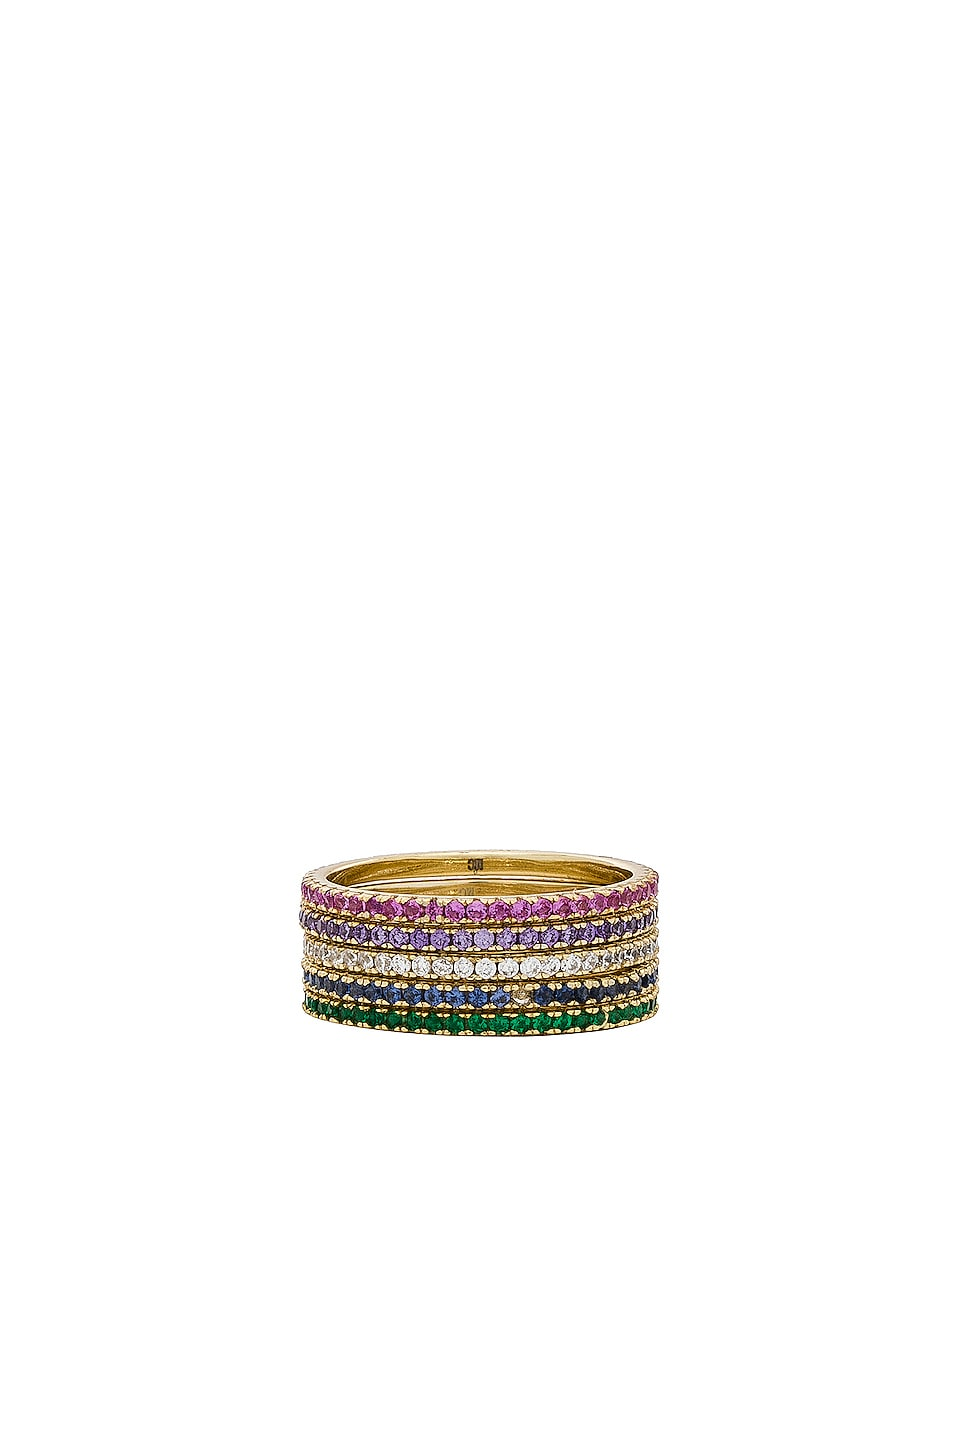 joolz by Martha Calvo CZ Eternity Band in Gold & CZ